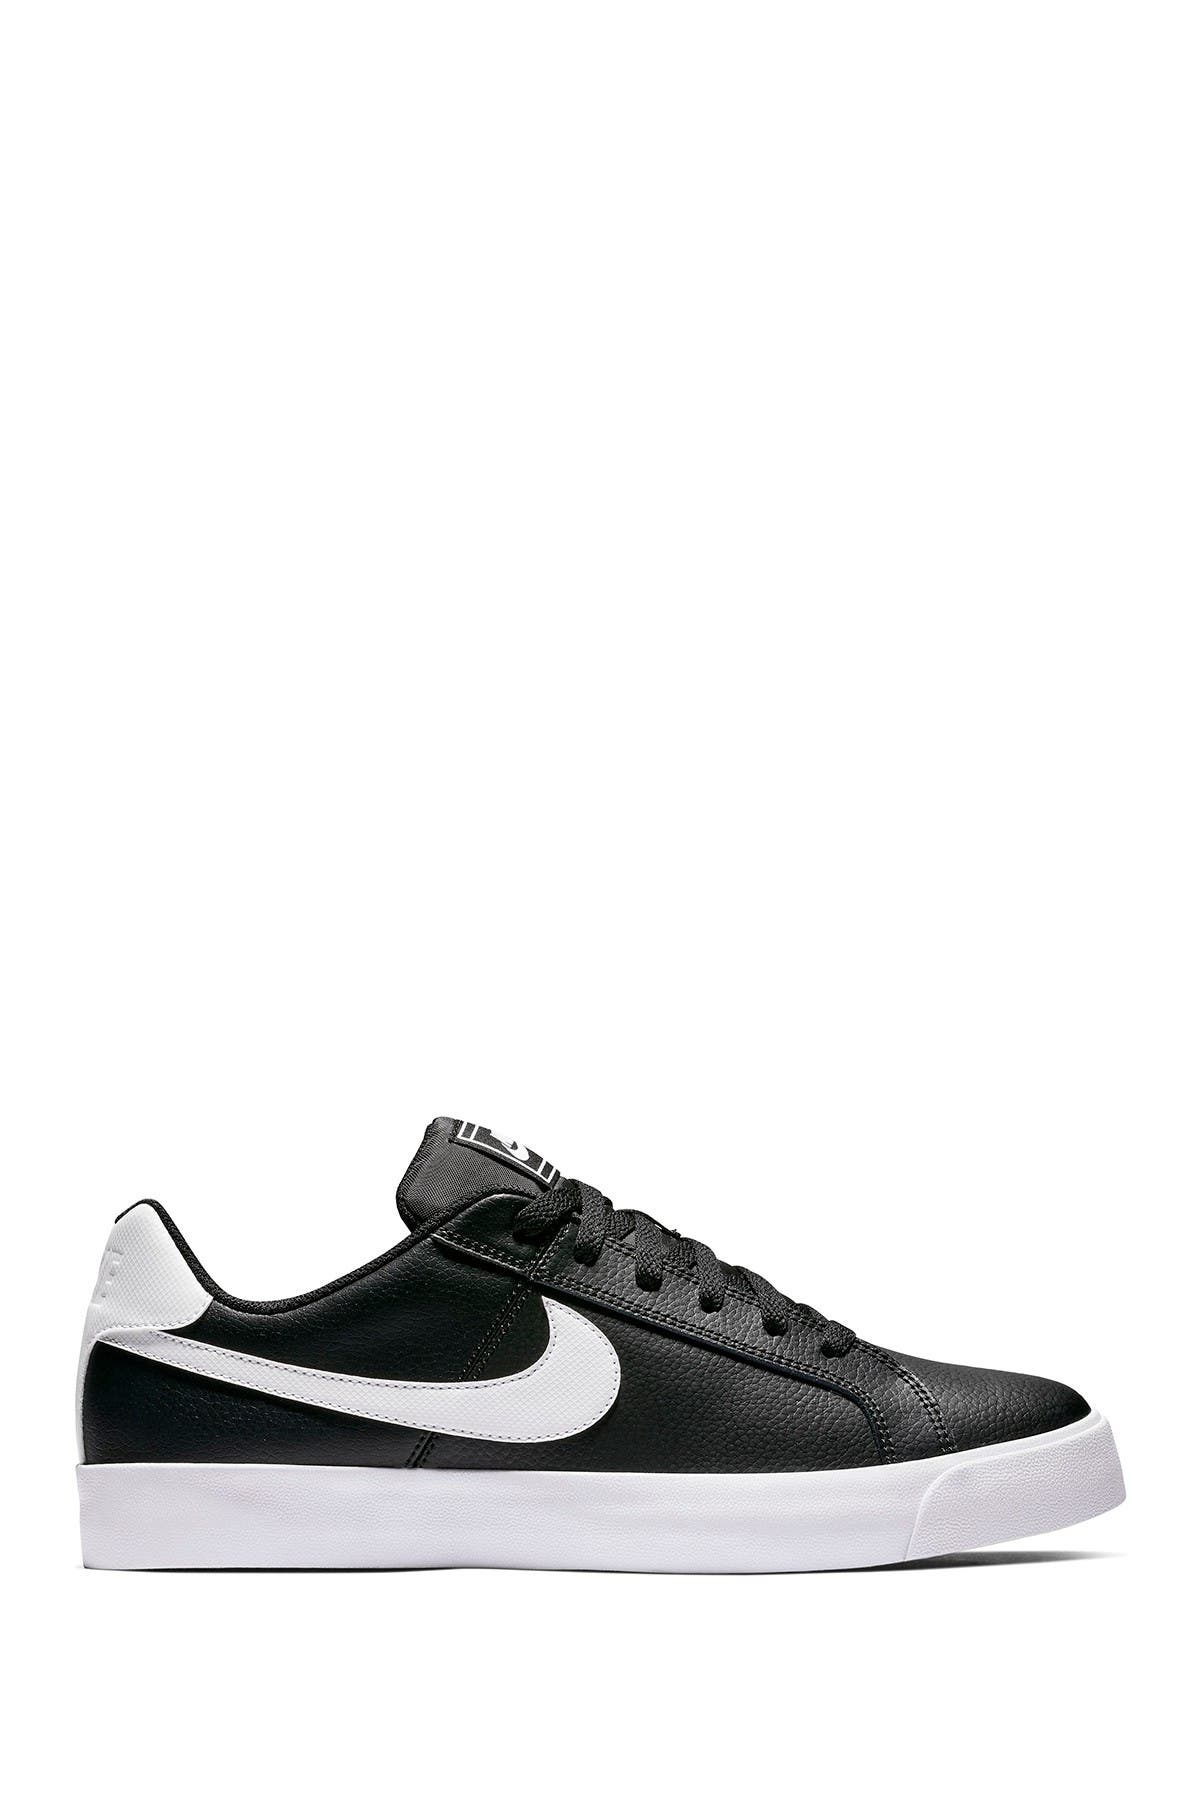 white court royale sneakers